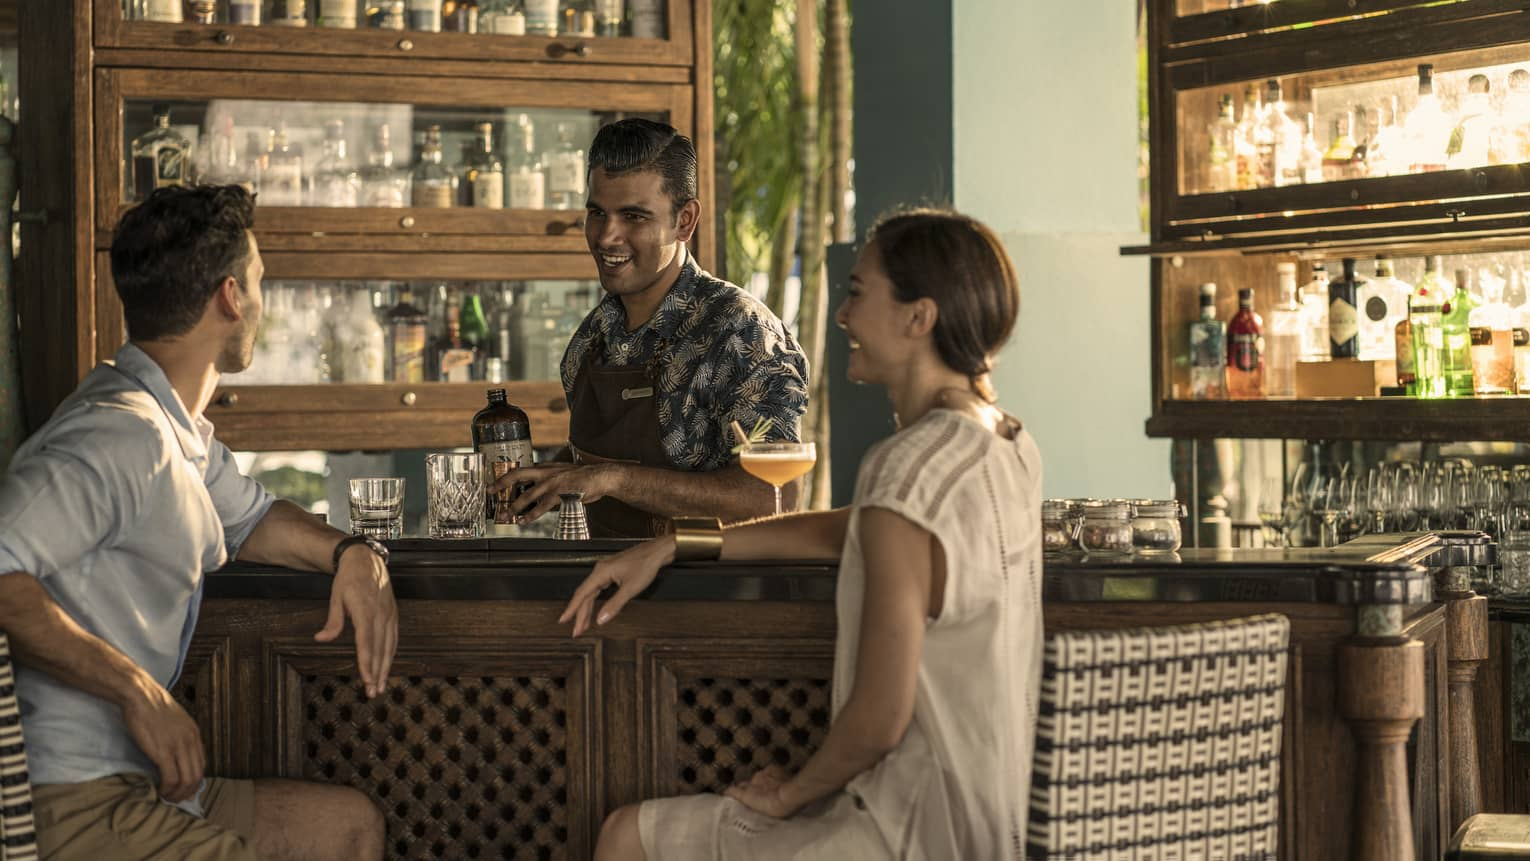 Two guests chat with a bartender at rhu bar while he makes a drink